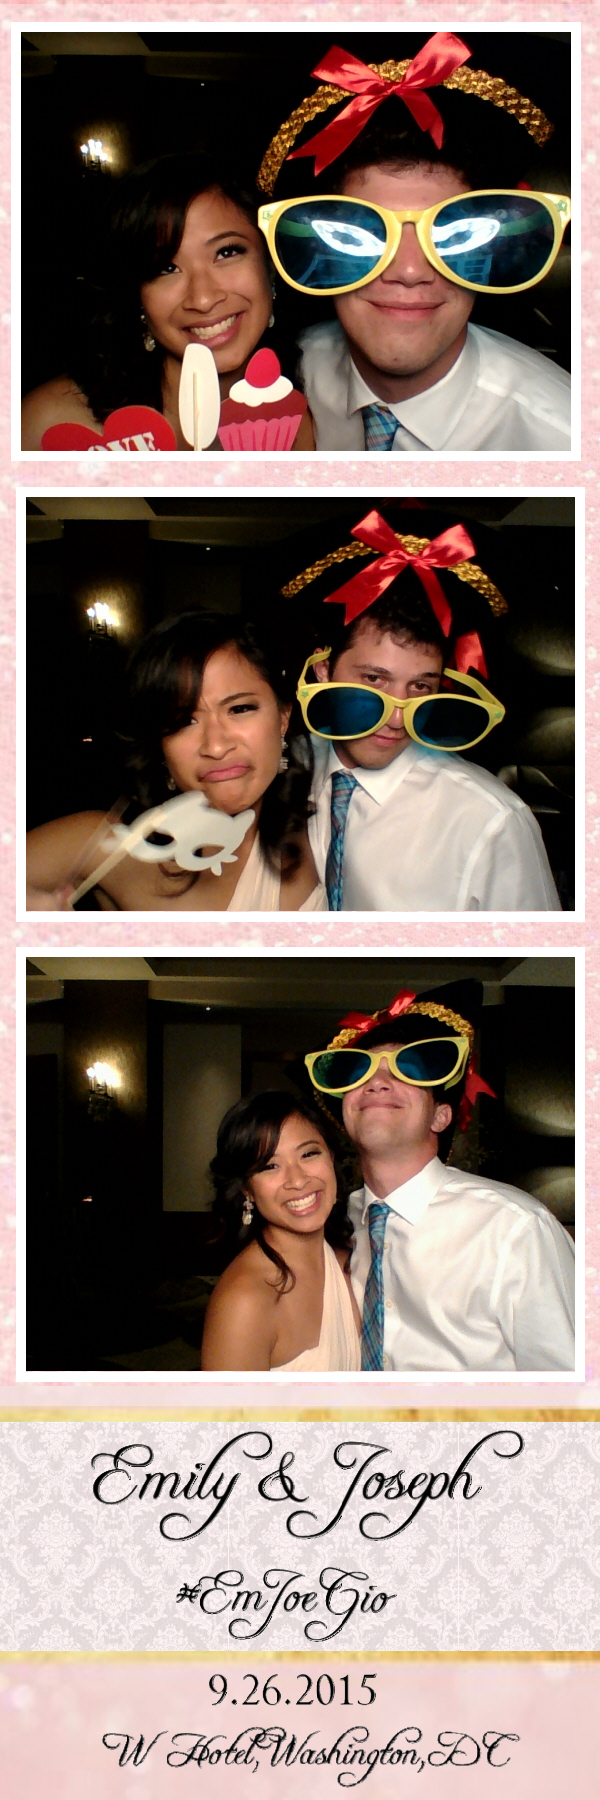 Guest House Events Photo Booth E&J (6).jpg